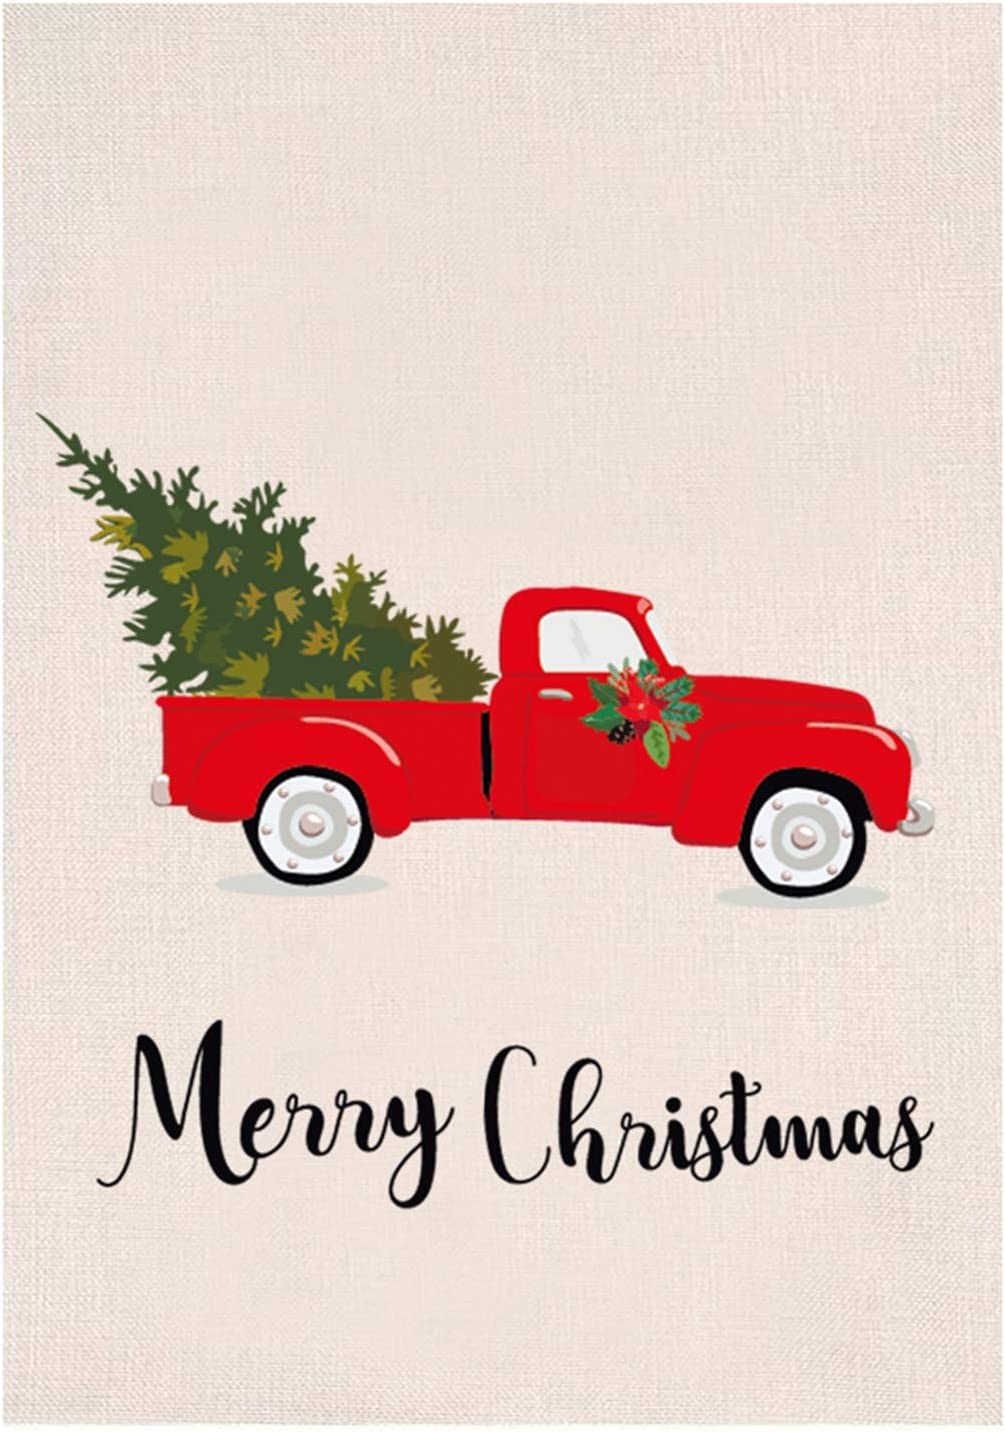 Ujuuu Merry Christmas Garden Flag Vintage Tree Home Xmas Decorative House Yard Flag with Red Truck, Rustic Winter Garden Yard Decorations, New Year Seasonal Outdoor Flag 12 x 18in